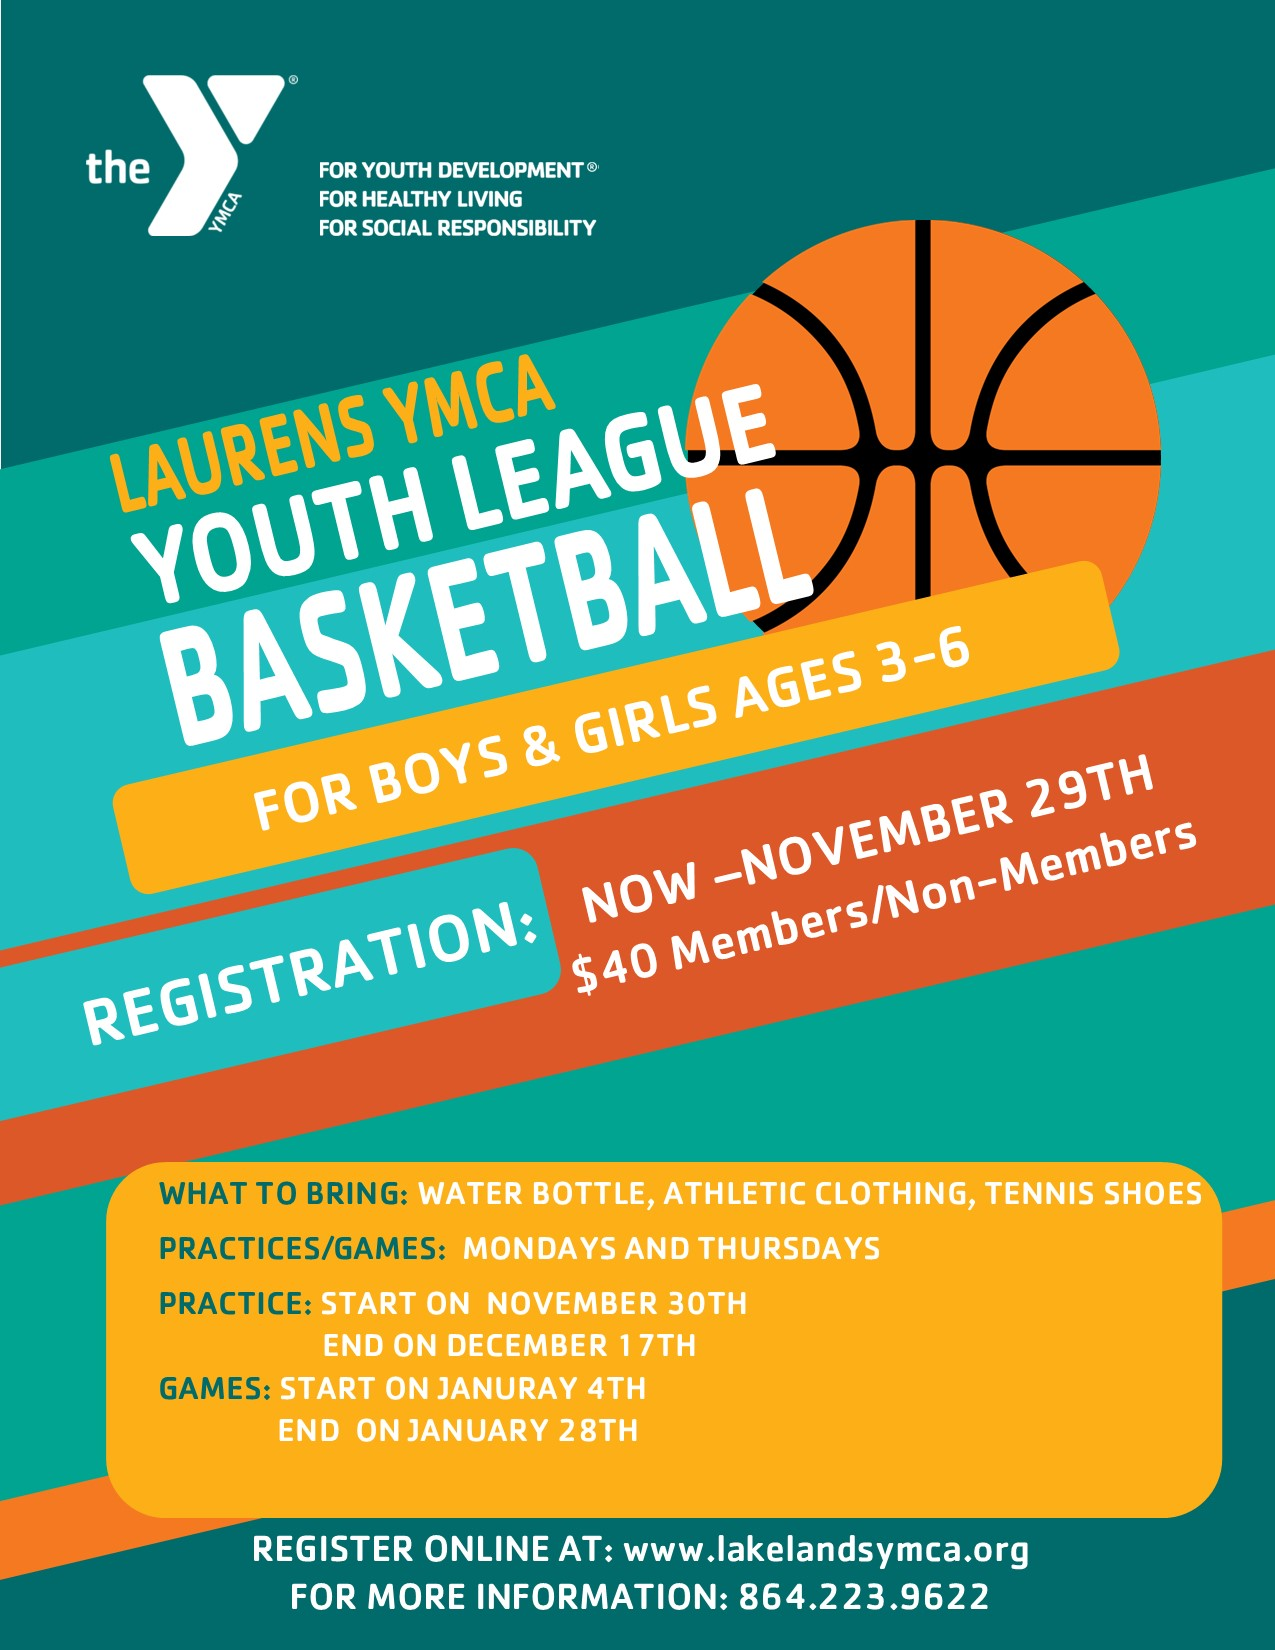 YOUTH BASKETBALL REGISTRATION IS NOW OPEN!